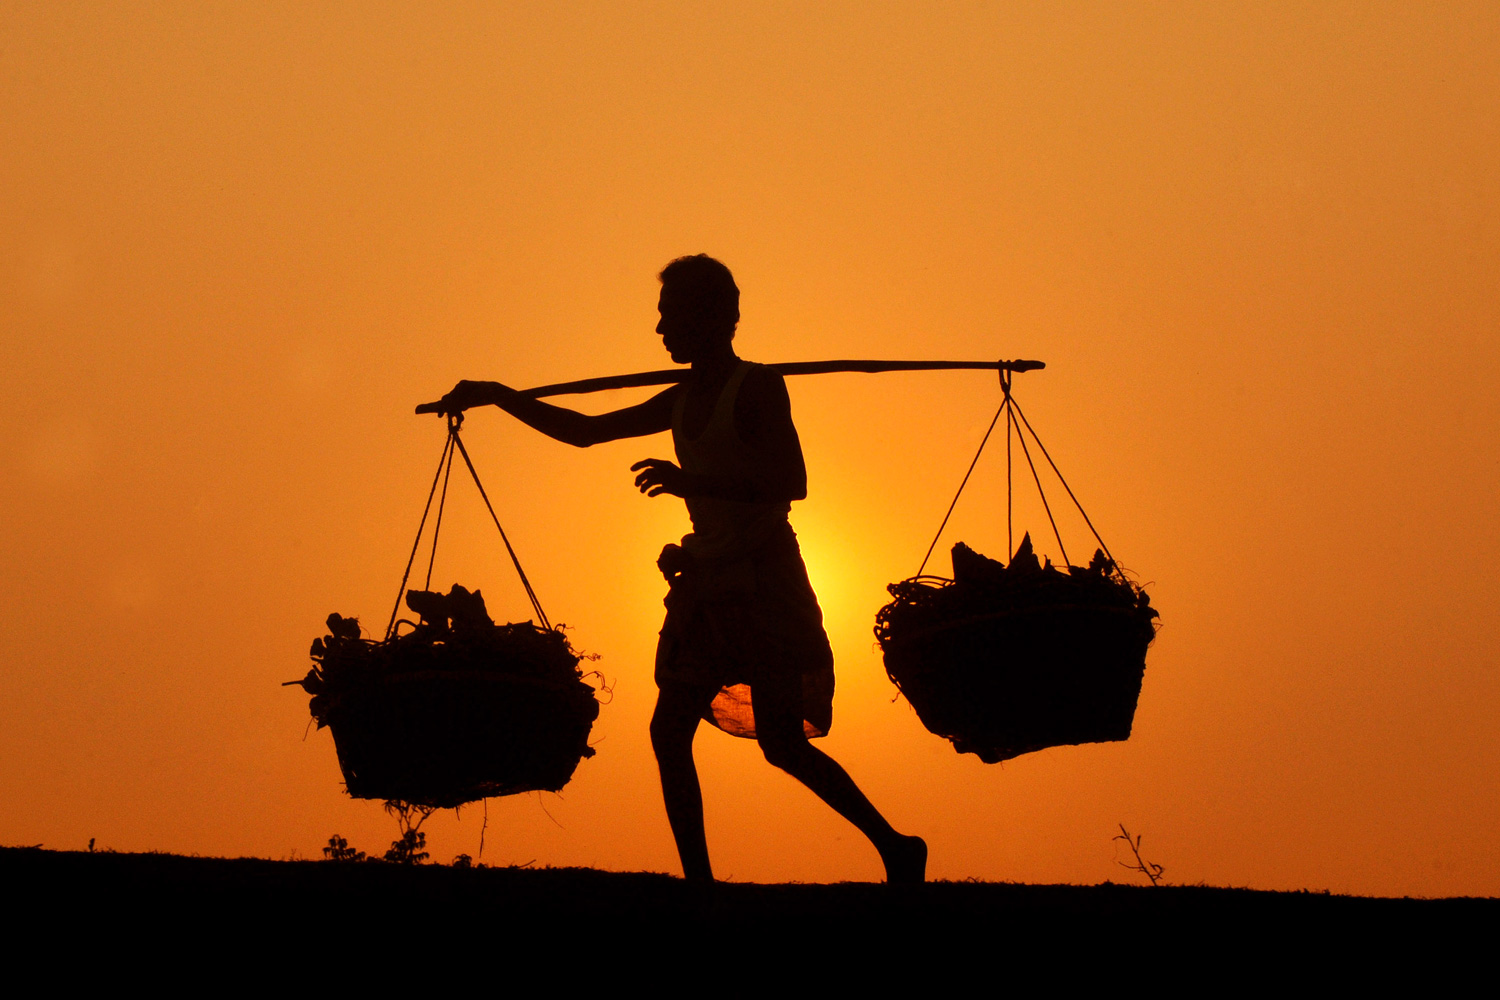 January 24, 2012. An Indian farmer returns back home from work during sunset in Agartala, India.